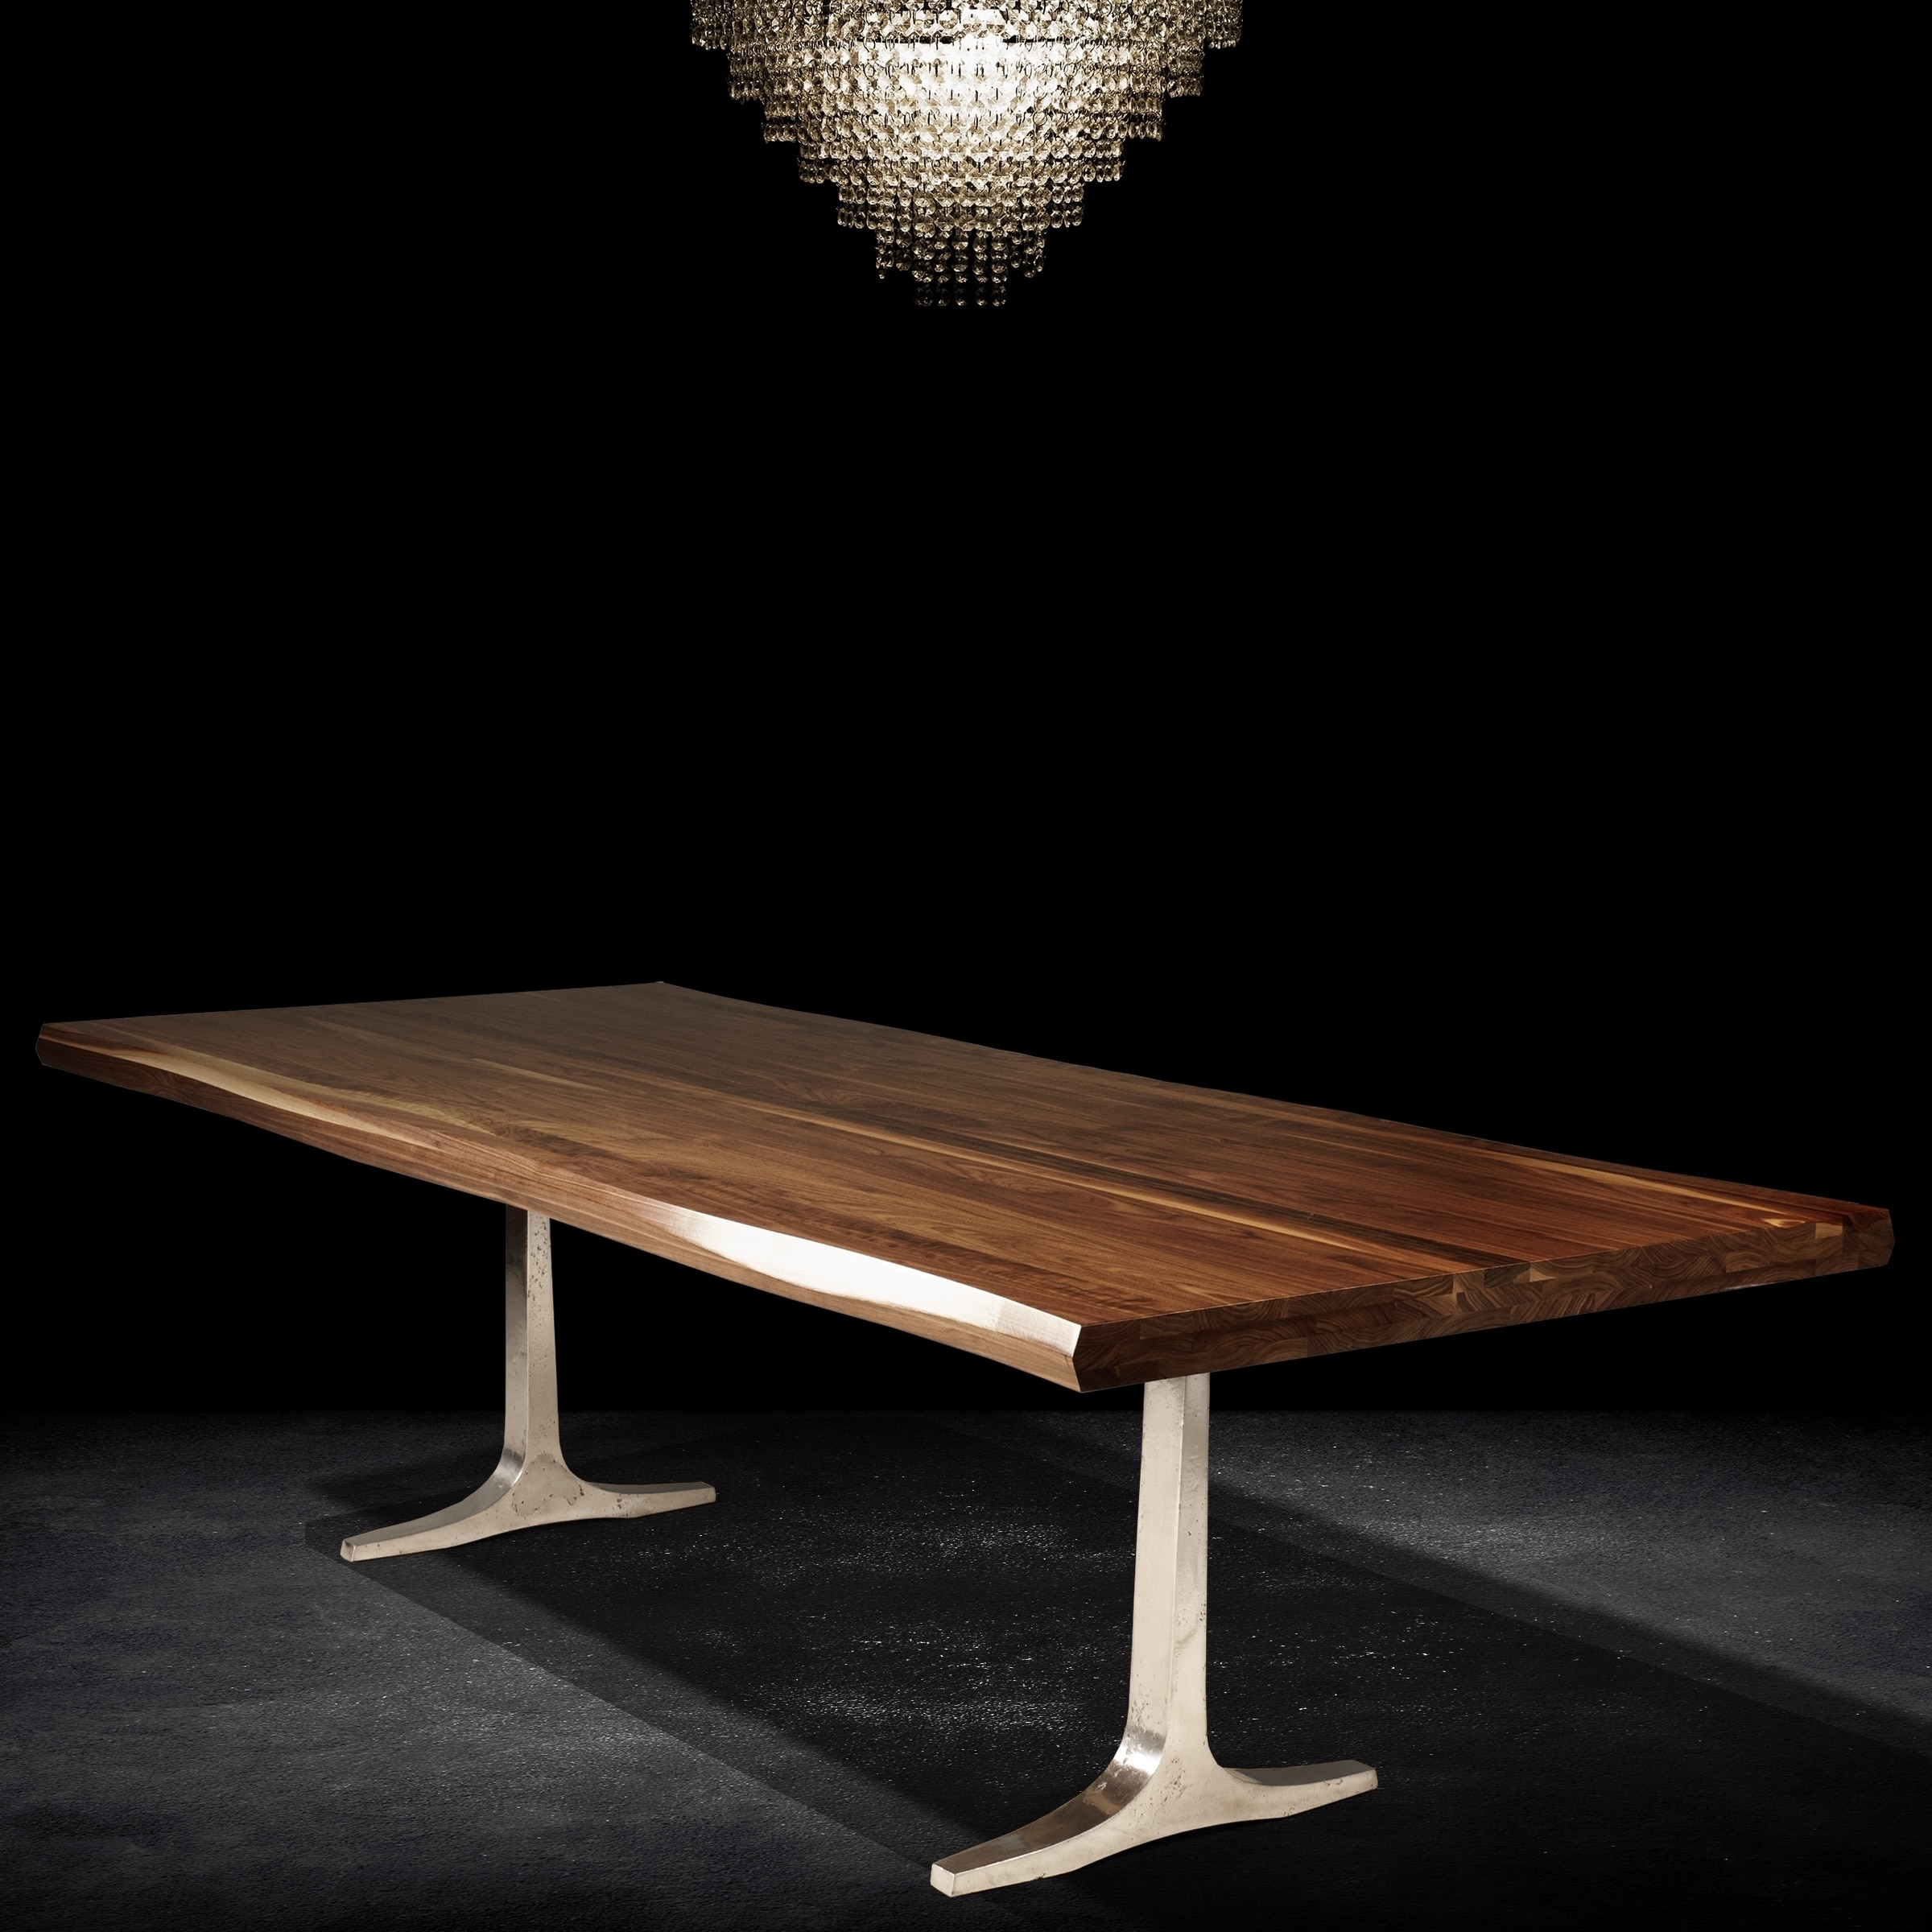 Shop saloom apollo 42x80 inch rectangular black walnut wave edge top custom dining table with trestle base brown free shipping today overstock com